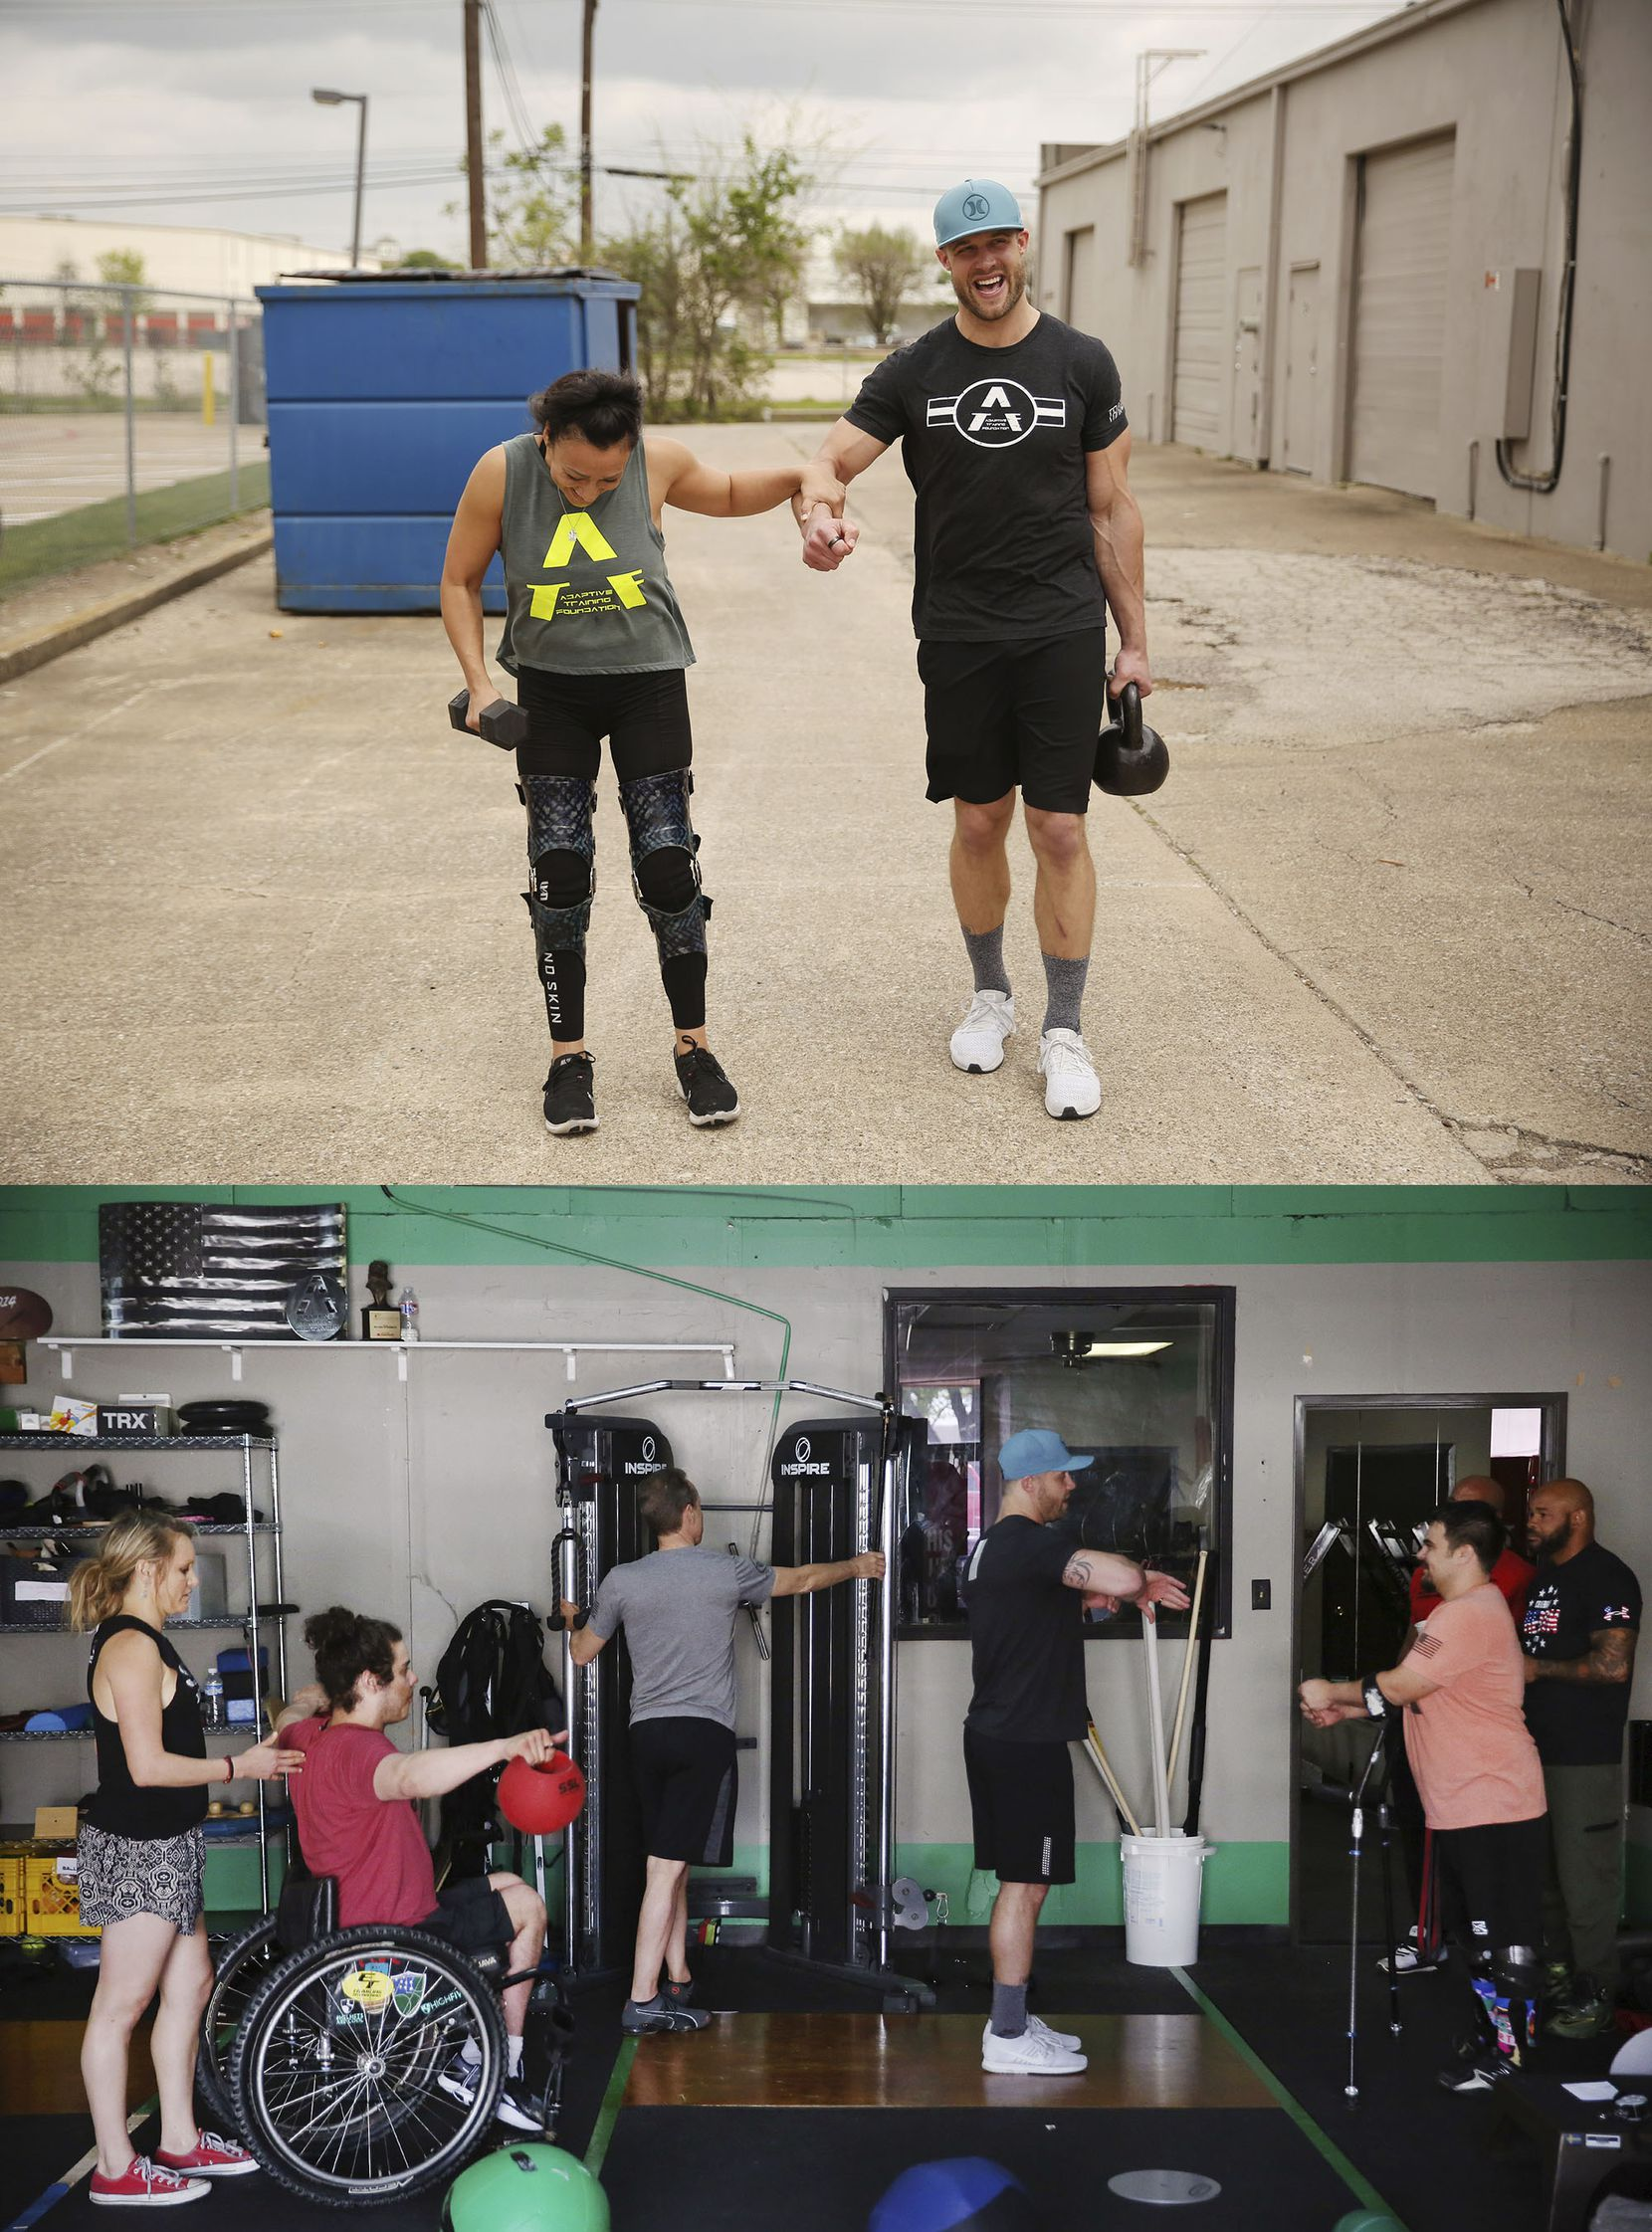 (Above) Vanessa Cantu grabs onto David Vobora while working out at the Adaptive Training Foundation gym in Dallas. (Below) David Vobora (in blue hat) speaks with Chris Wolff, (front right) Keyone Johnson (far right) and Paul Caldwell (obscured) during the Adaptive Training Foundation's last group workout in its old space in Dallas.